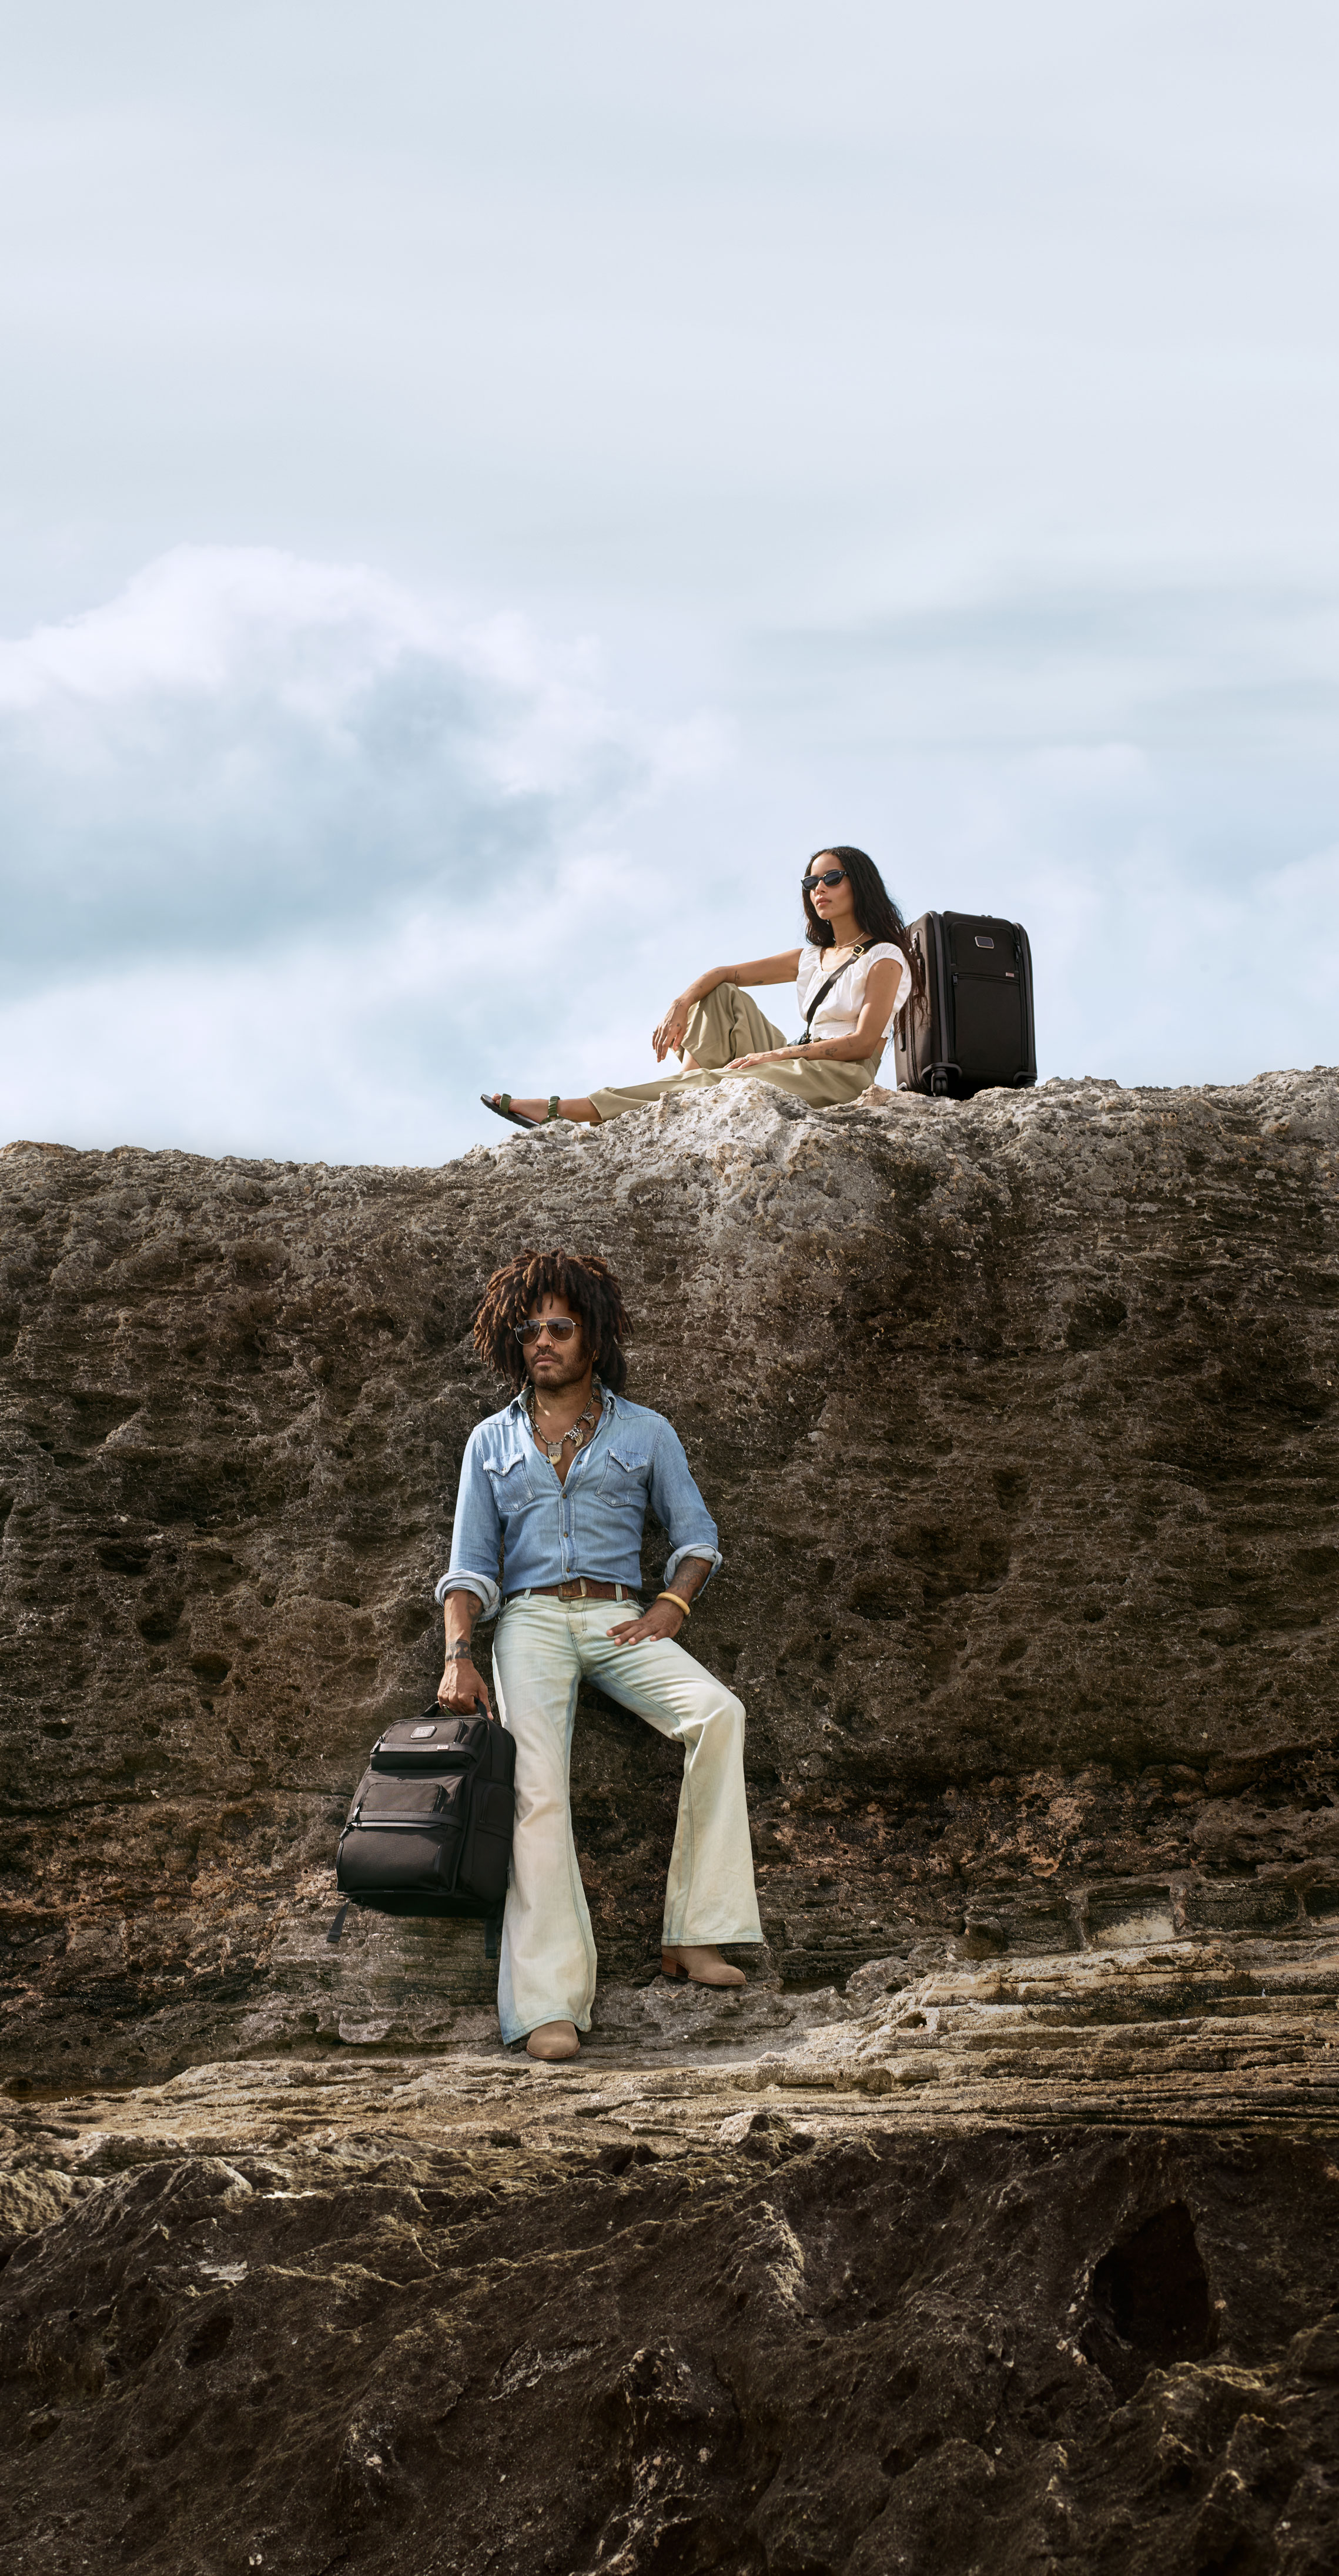 Lenny and Zoe Kravitz on the Bahamas, shooting a campaign image for Tumi